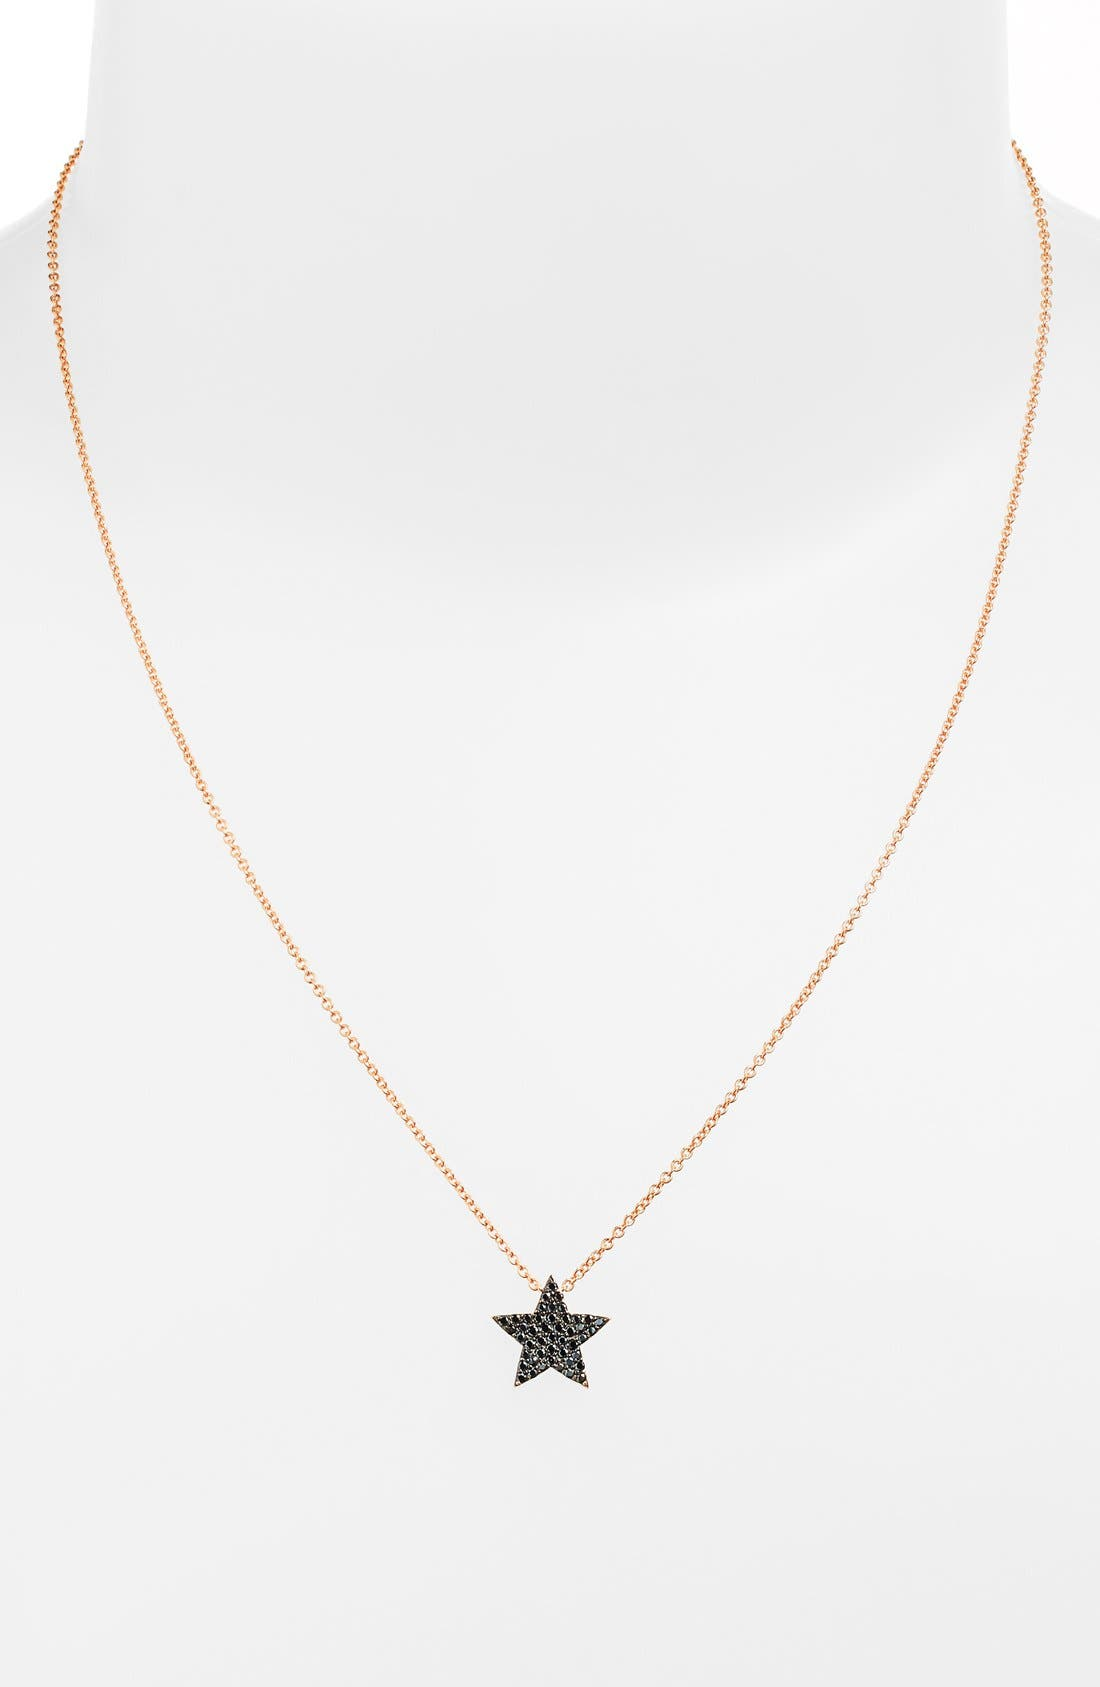 Main Image - Sugar Bean Jewelry Star Pendant Necklace